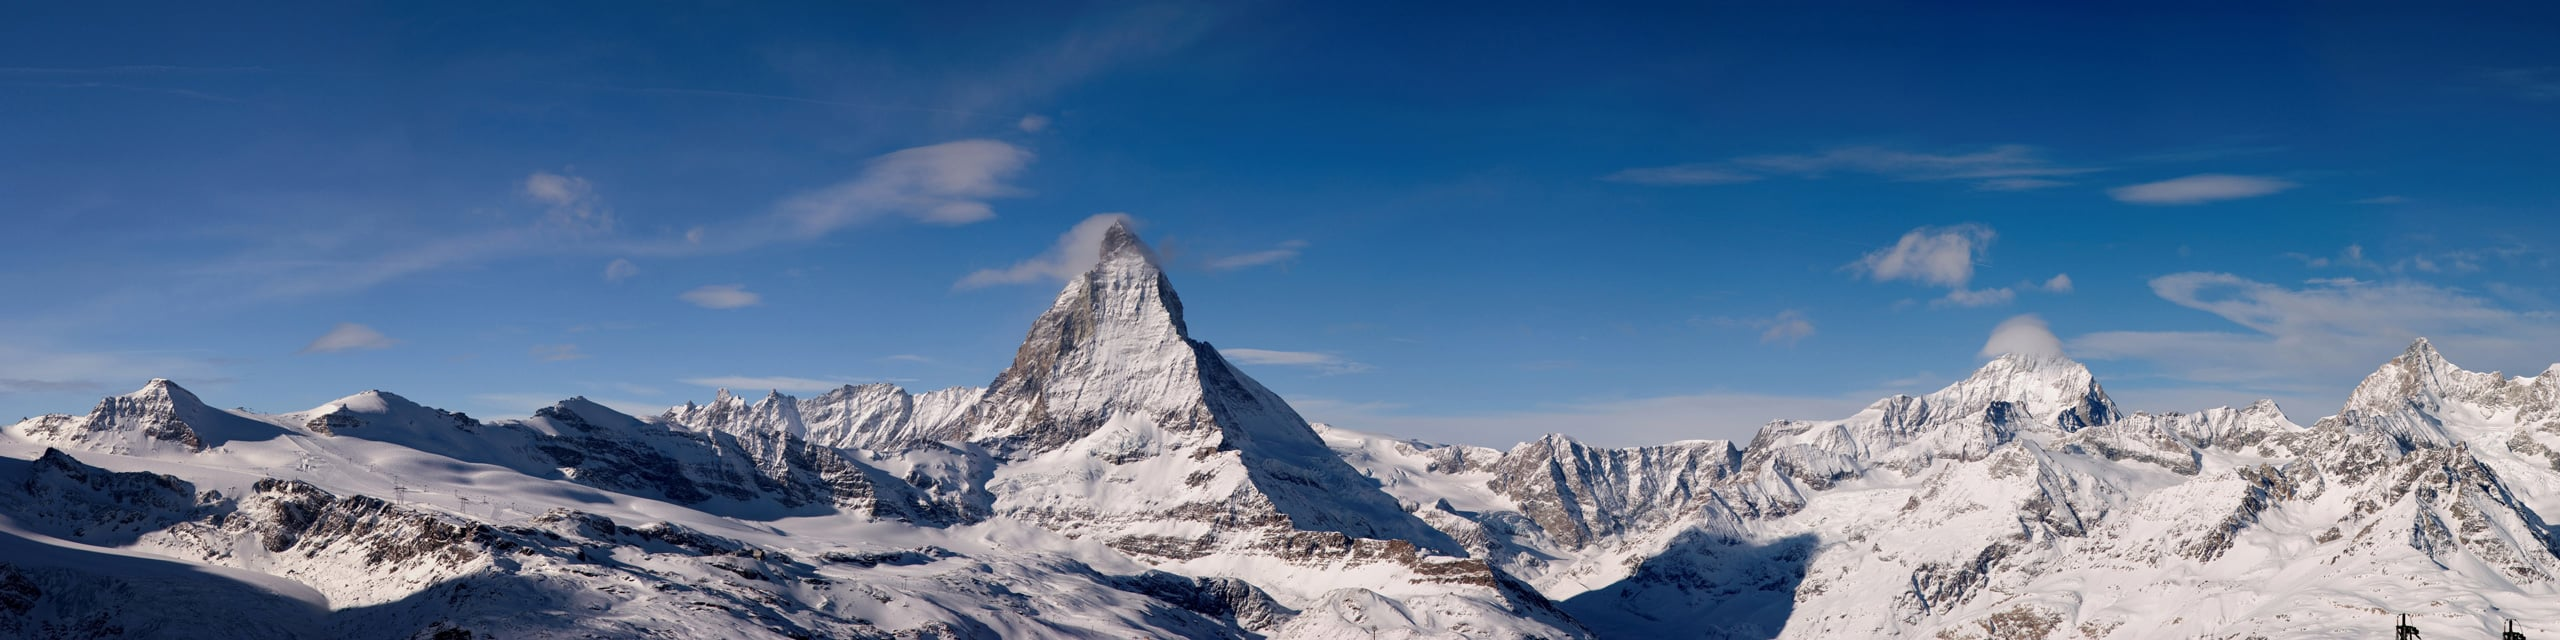 Welcome to the Matterhorn - swiss immigration + relocation services